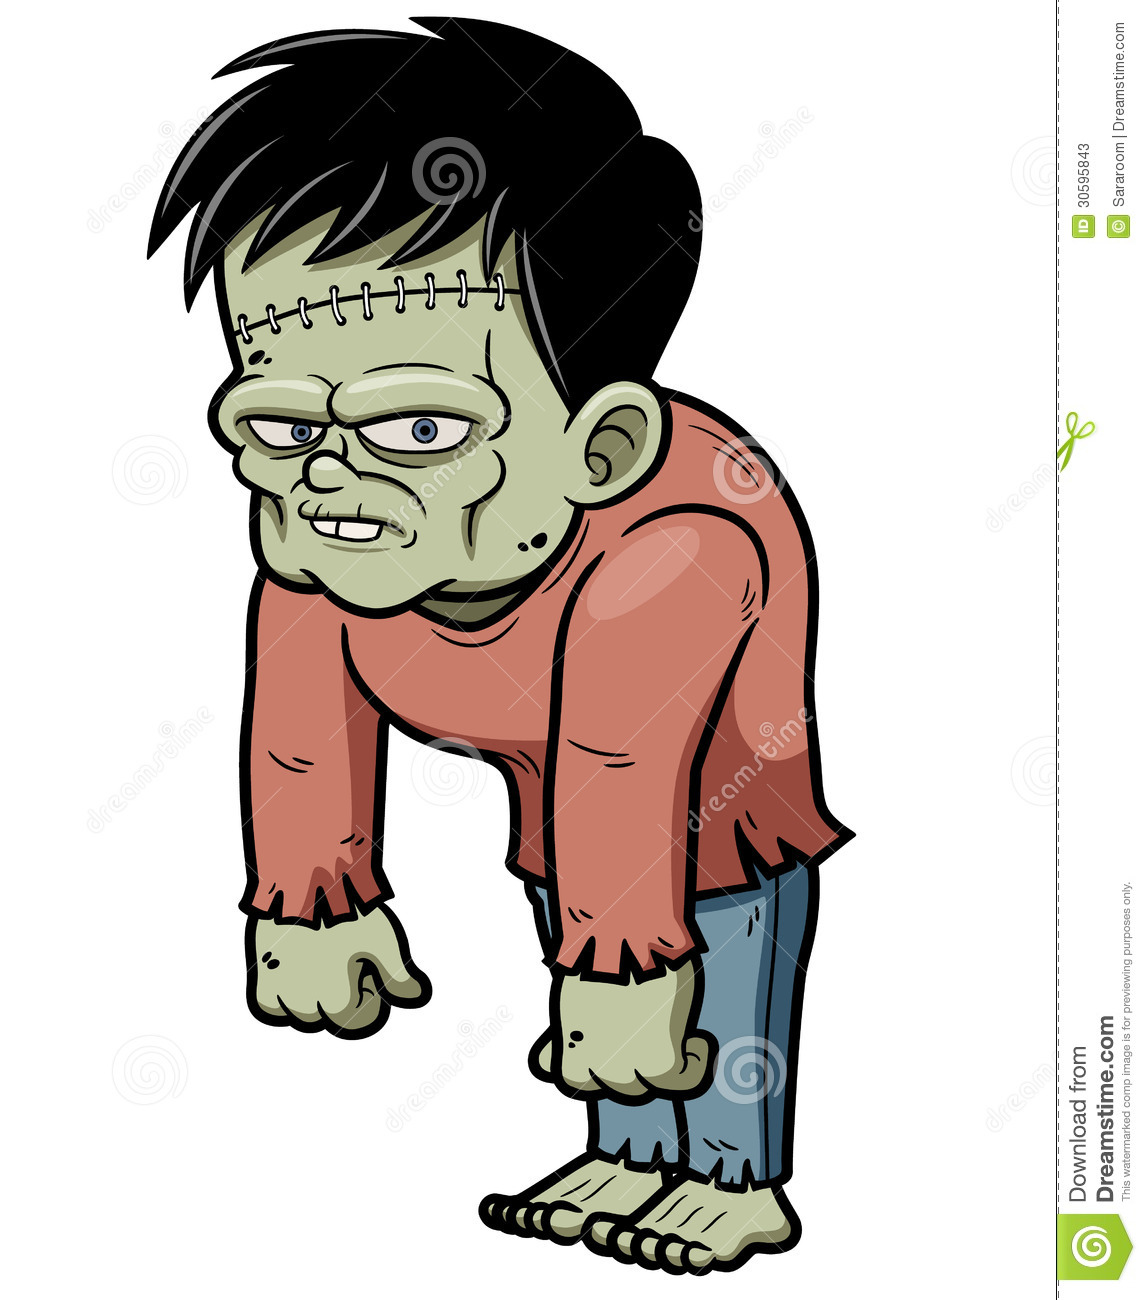 Cartoon Zombie Stock Photos - Image: 30595843